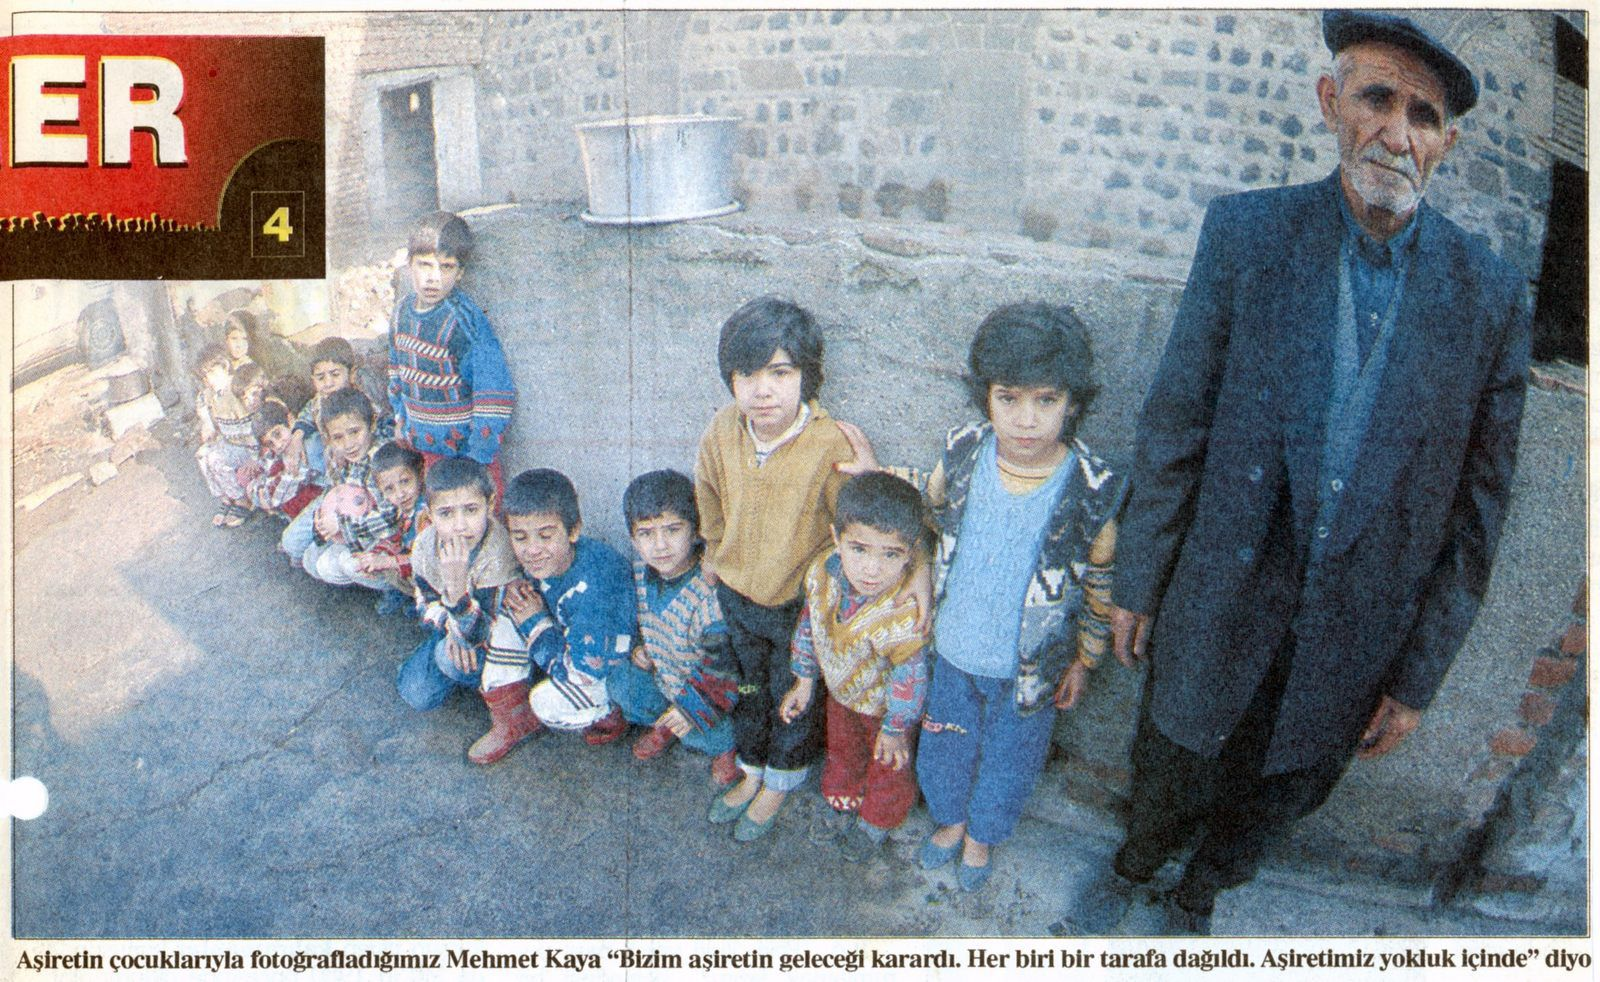 The fallen chief, surrounded by children of his tribe, poses for the  journalists (Sabah, January 6, 1997)